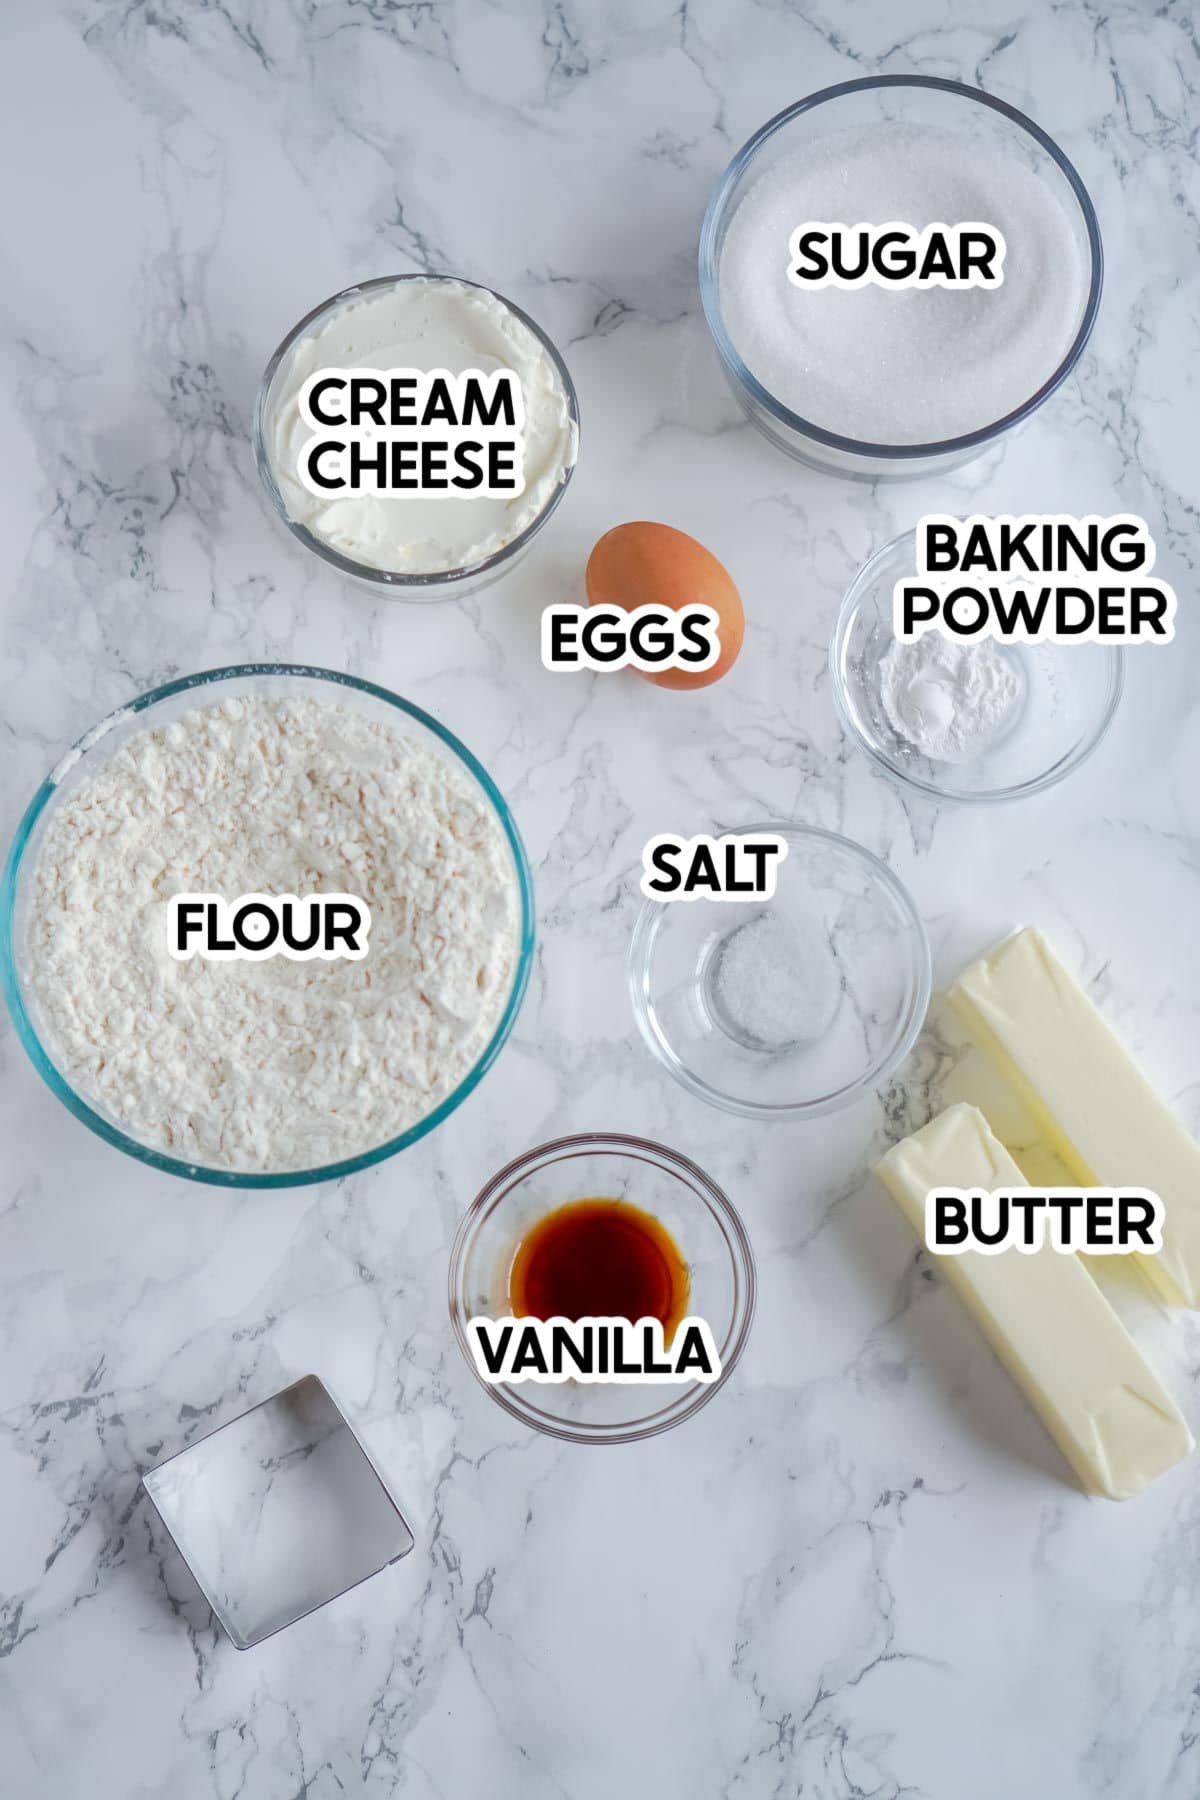 ingredients needed to make cream cheese sugar cookies with labels